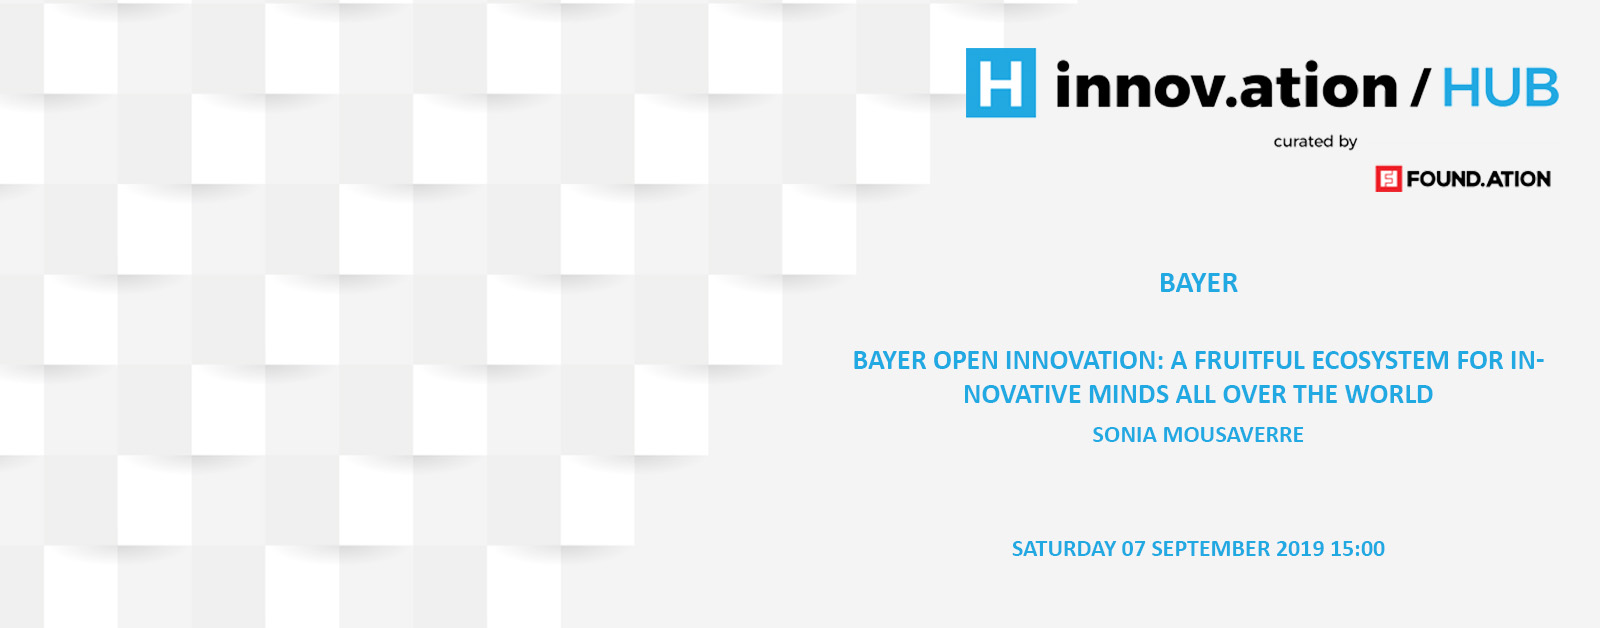 Bayer Open Innovation: A fruitful ecosystem for innovative minds all over the world (TIF19)